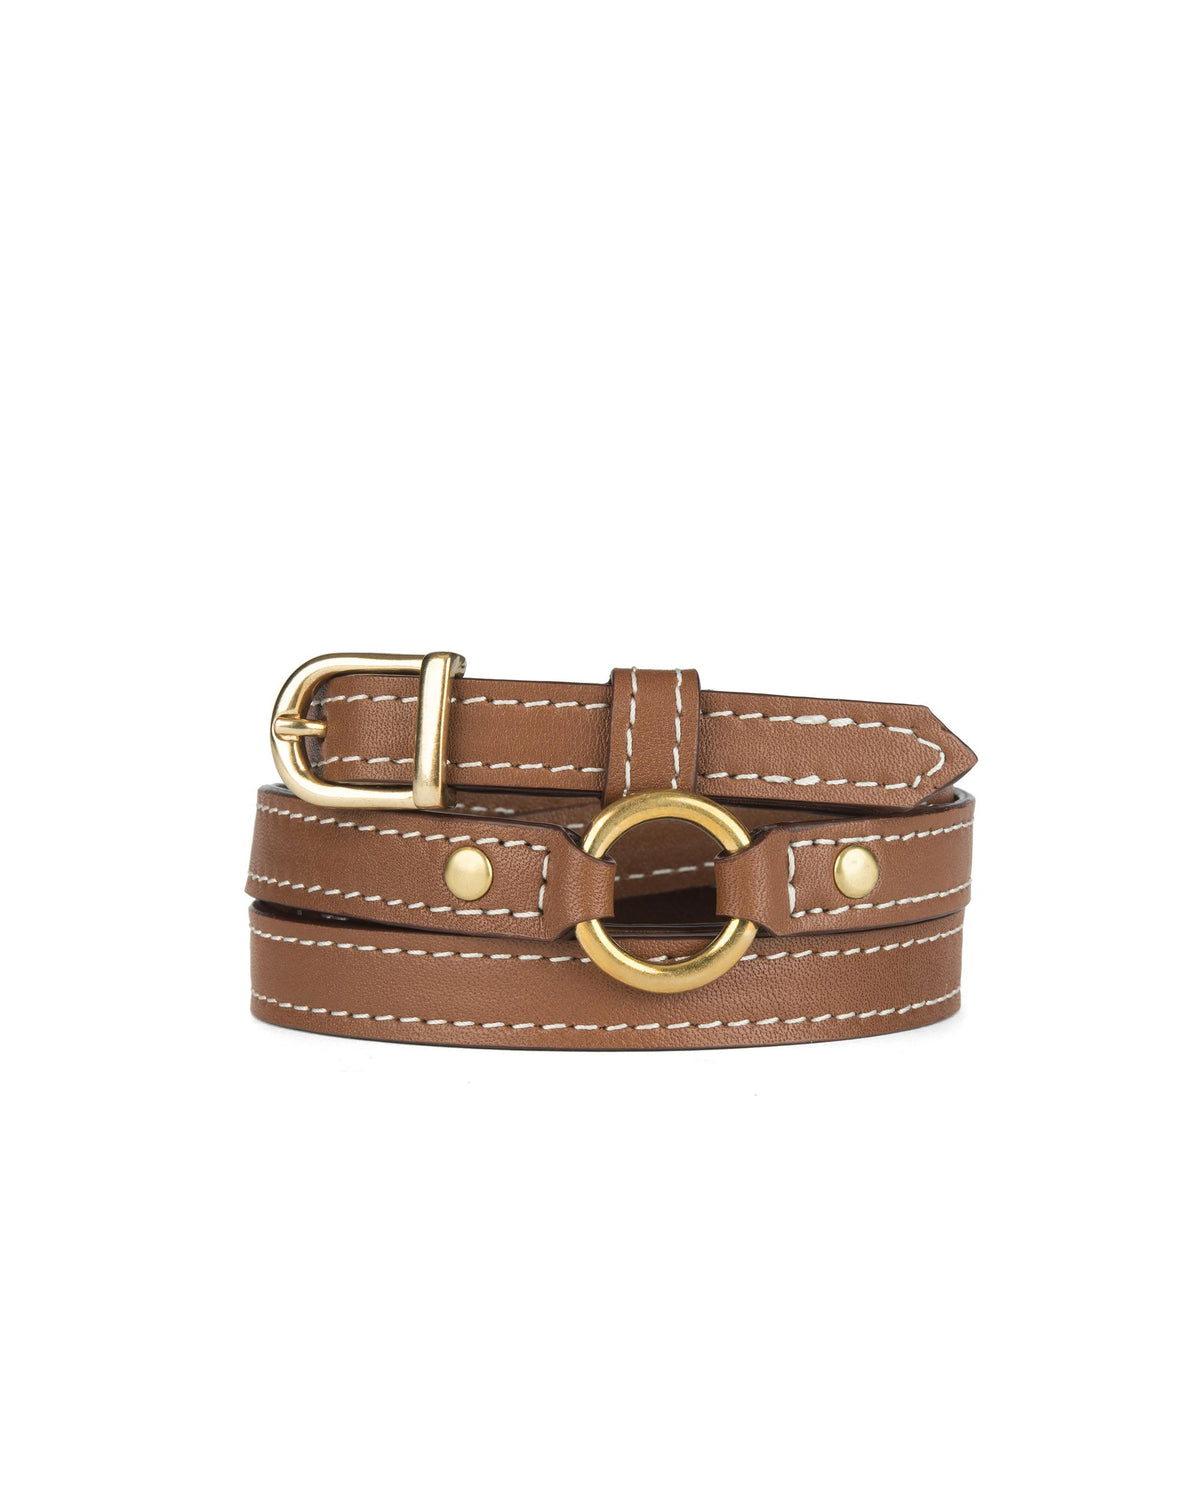 "1/2"" RING BELT in Cognac Napa"